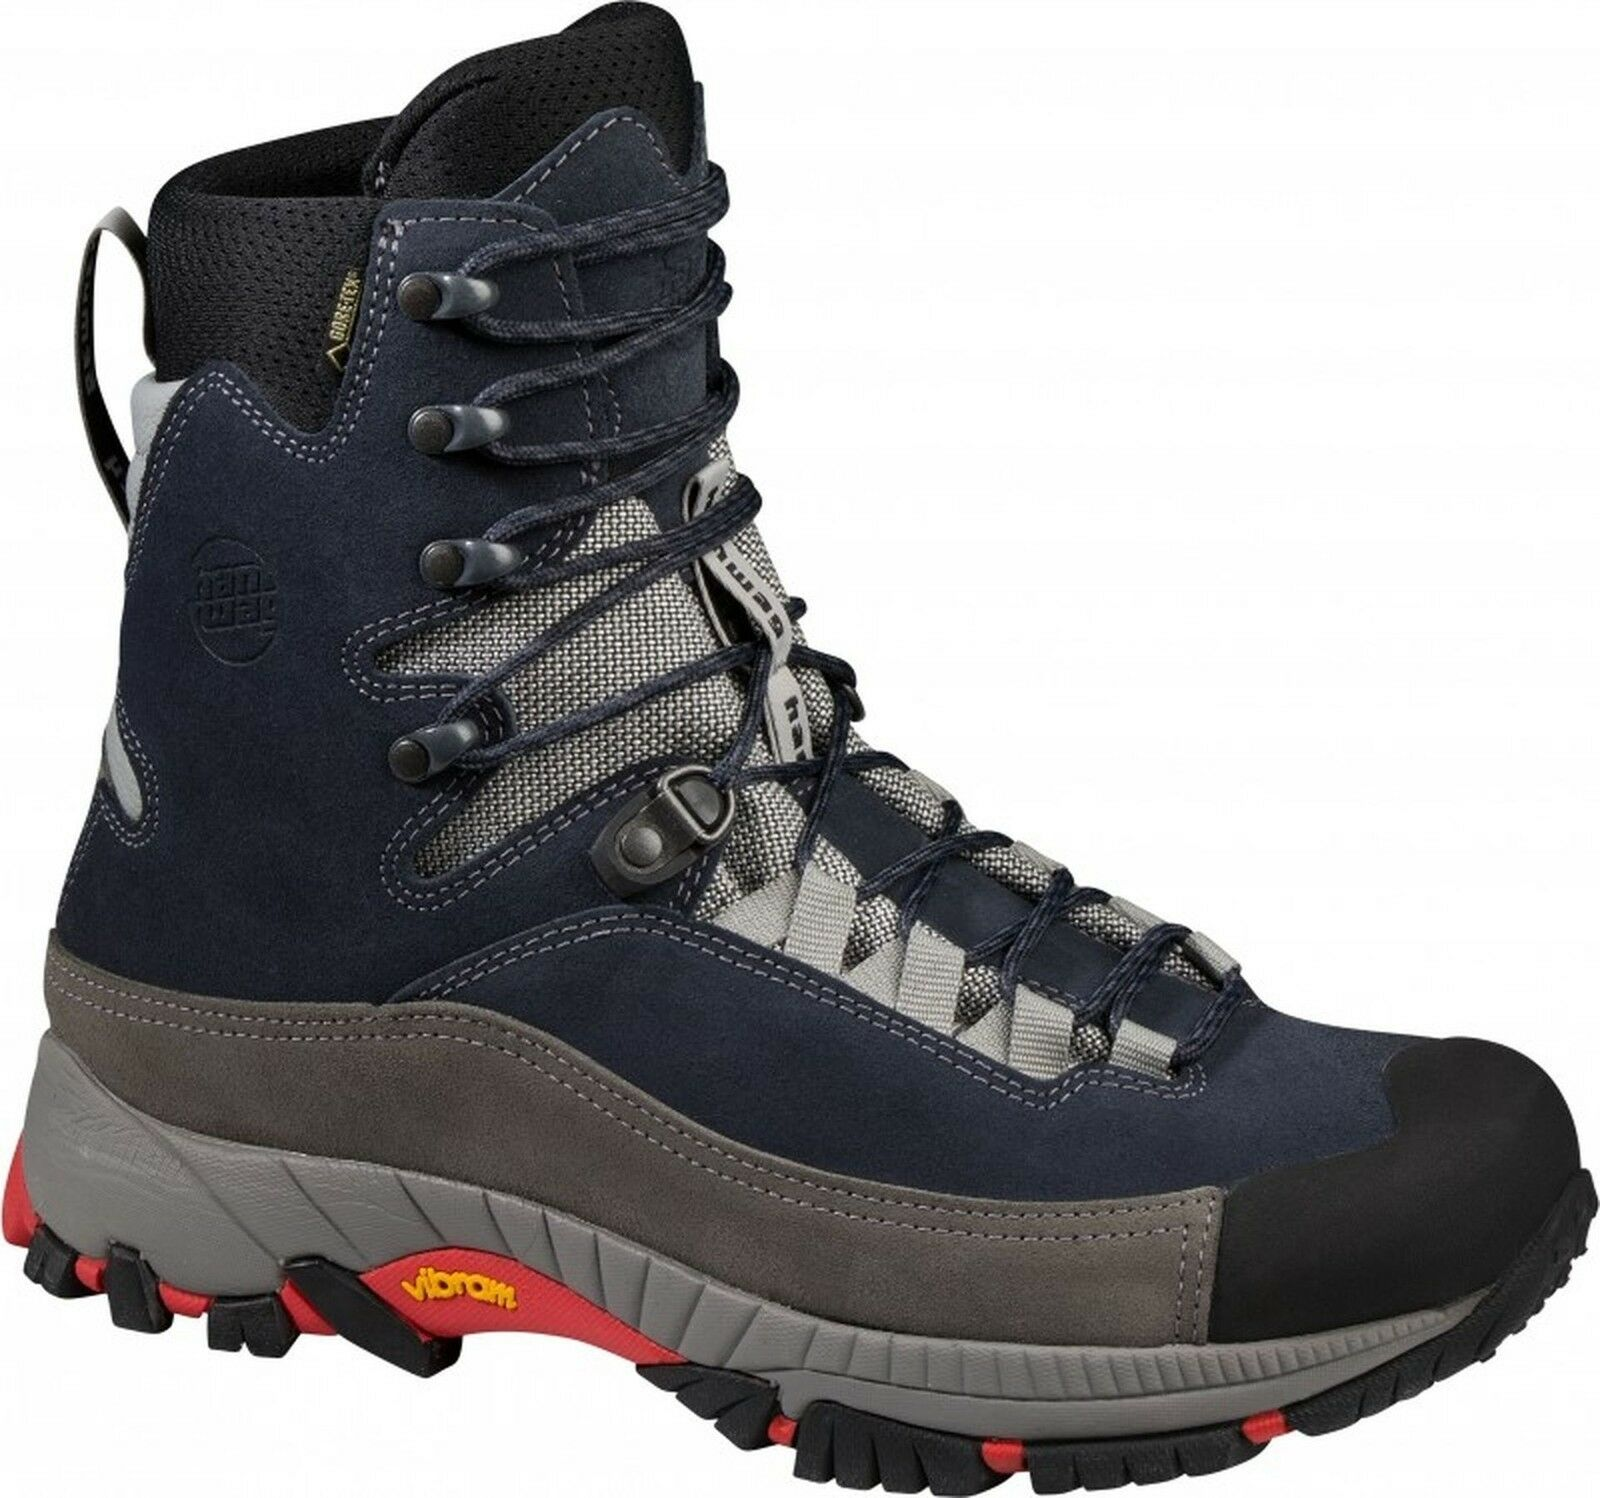 Hanwag Boots Paraglider Sky GTX Size 5,5  - 39 Navy bluee  cheap and top quality